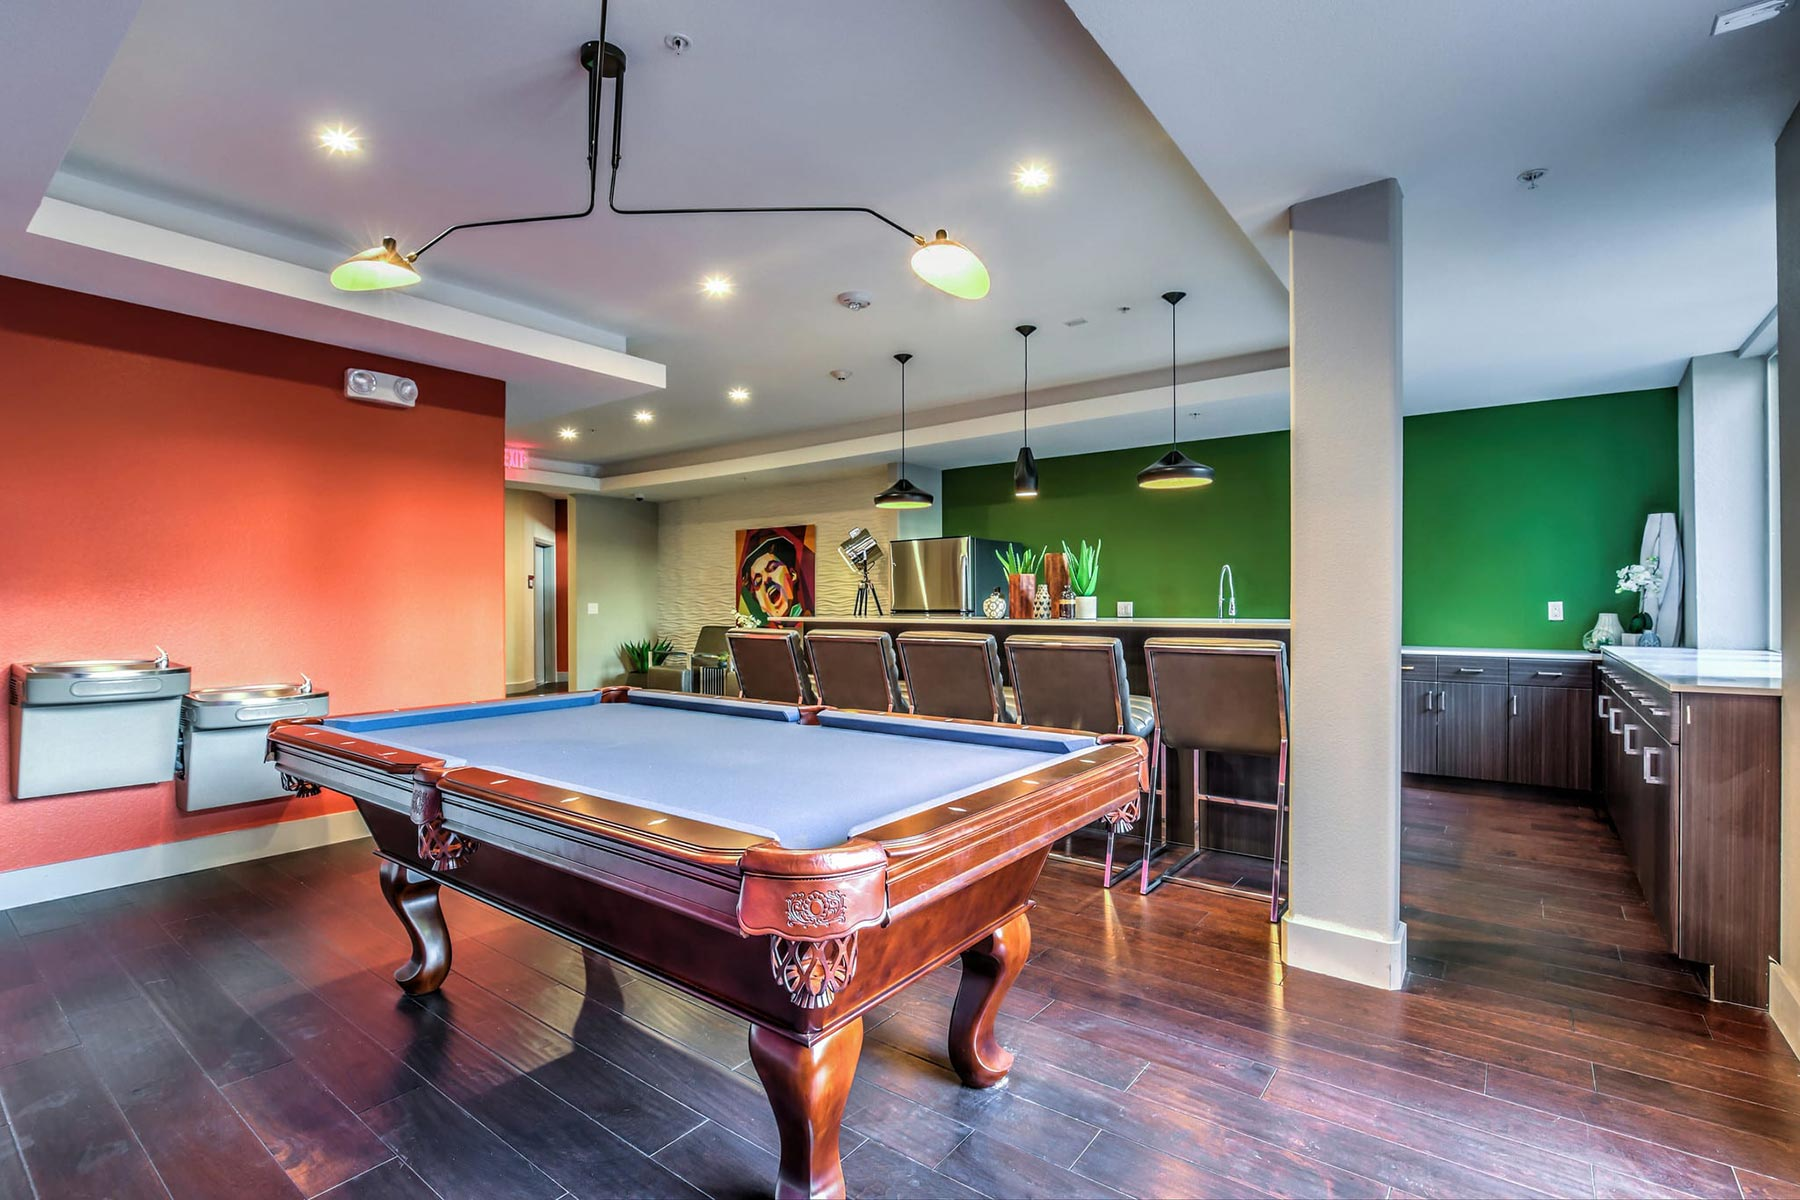 Billiards table in the community entertainment room. There is a kitchen with breakfast bar seating.